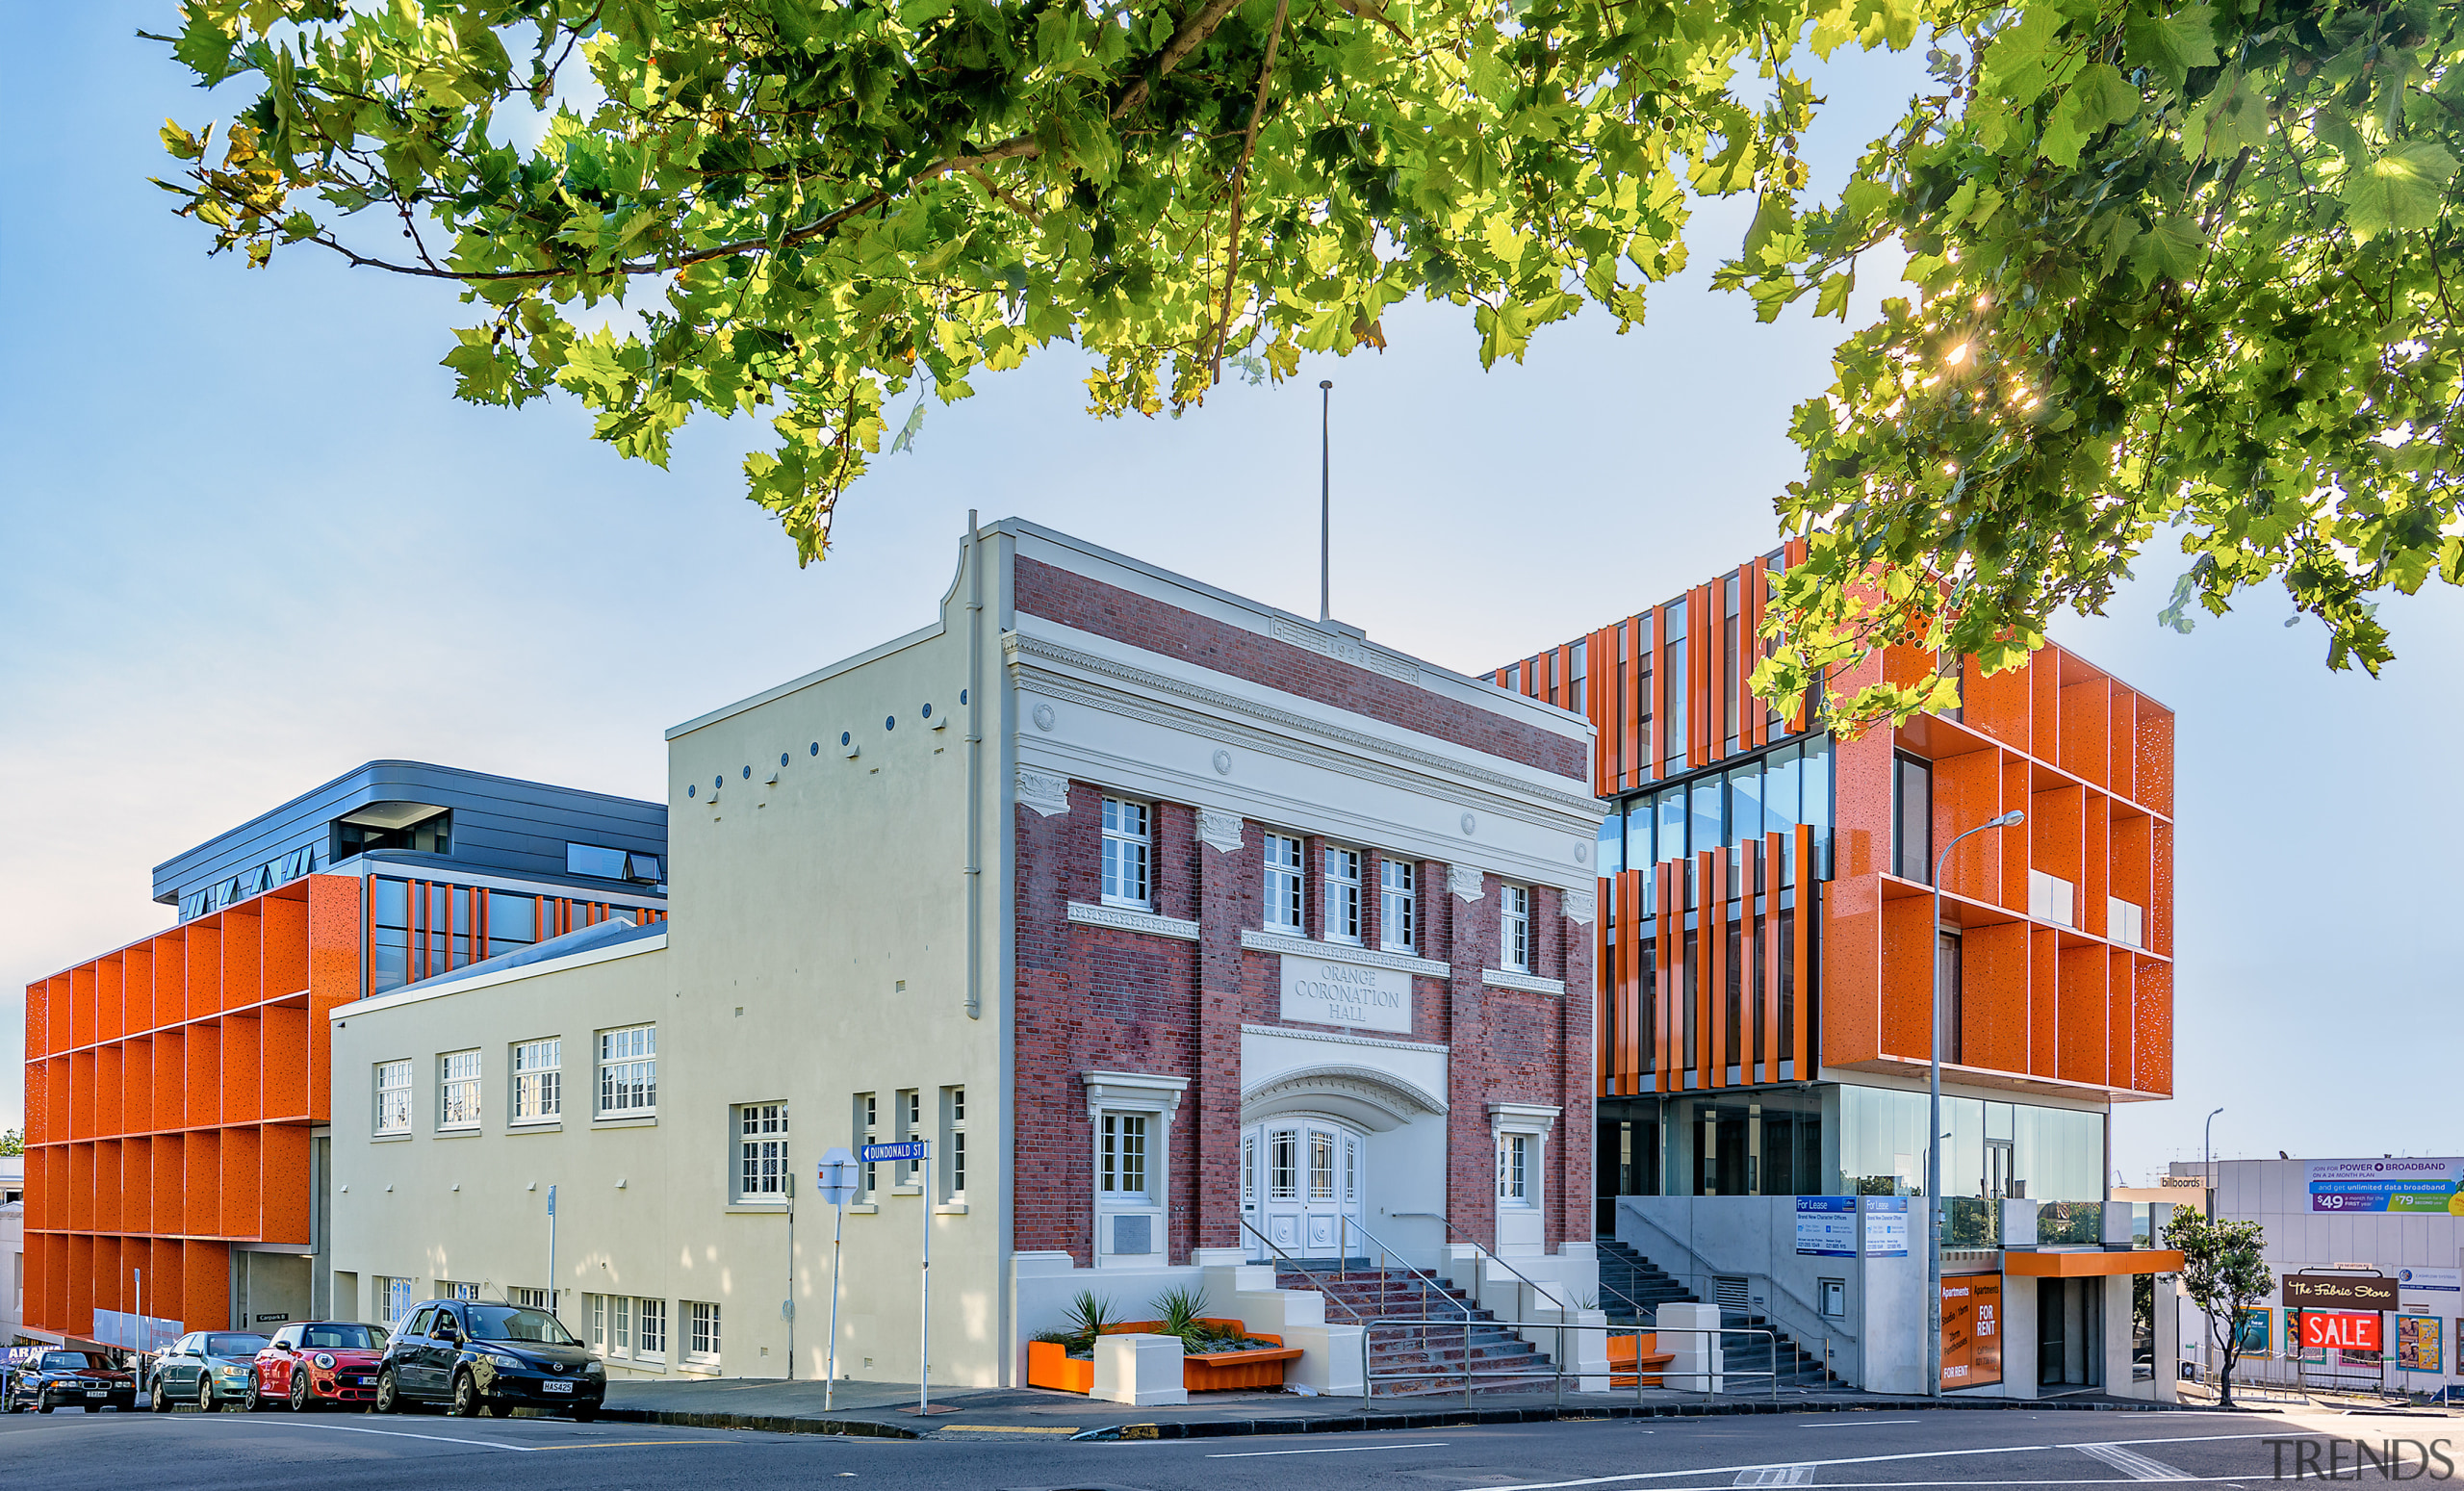 The Orange is a mixed-use Auckland development combining apartment, architecture, building, city, commercial building, elevation, facade, home, house, metropolitan area, mixed use, neighbourhood, real estate, residential area, white